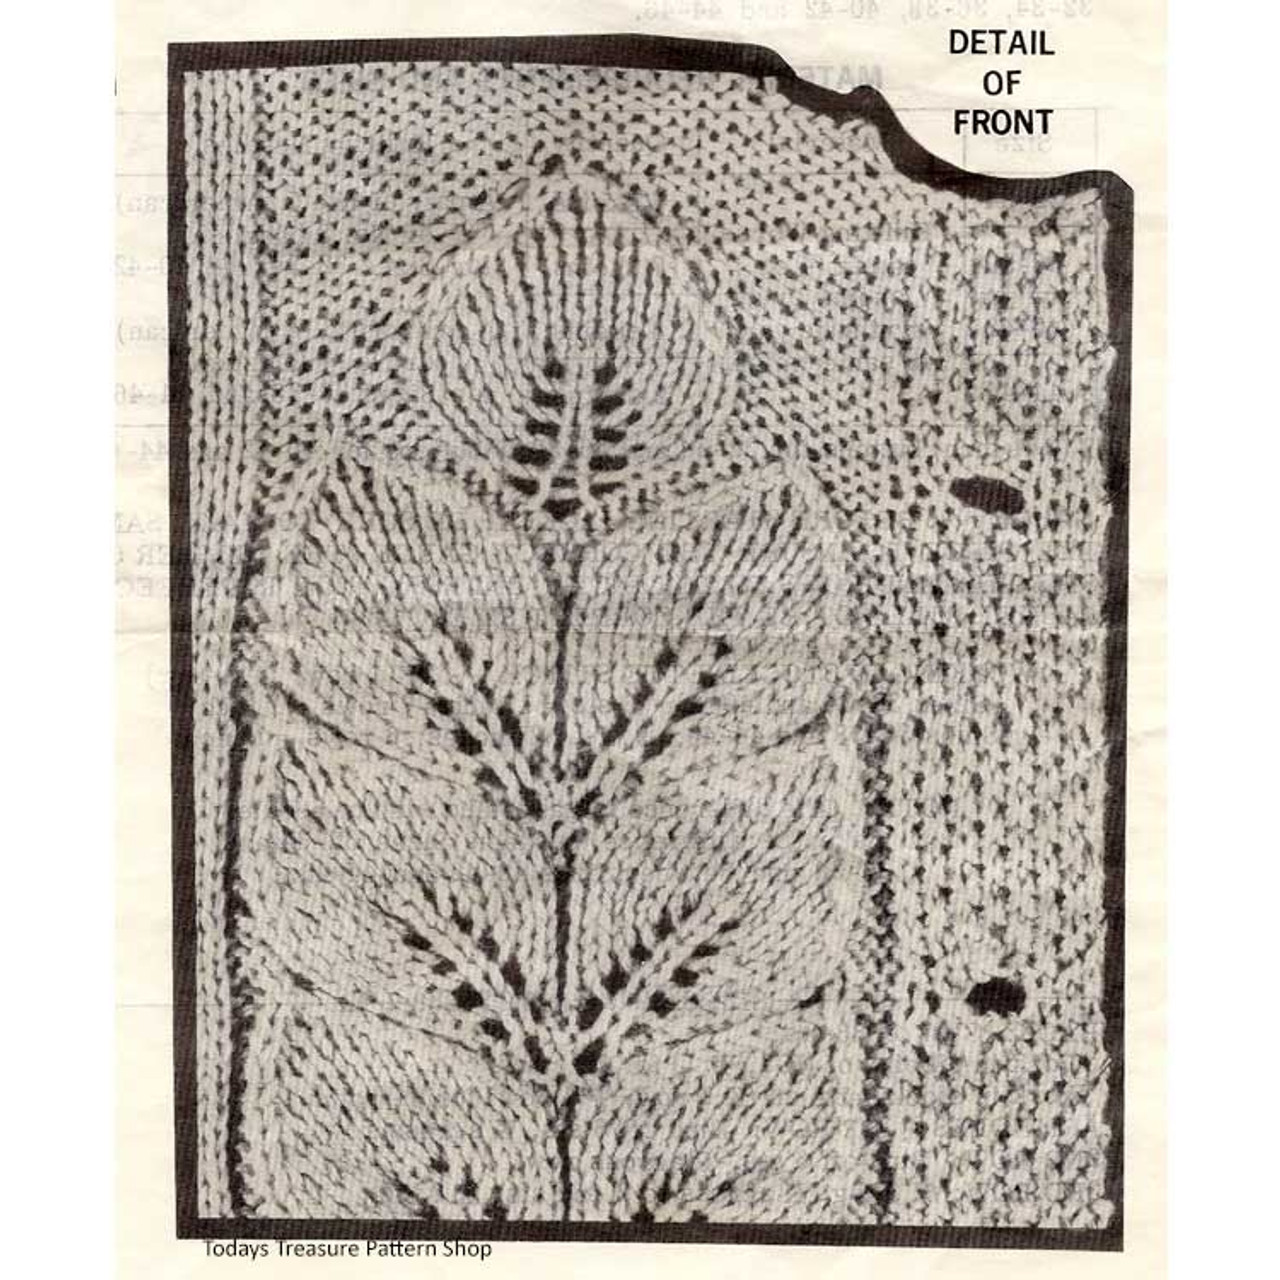 Leaf Motif on Knitted Cardigan Design 511